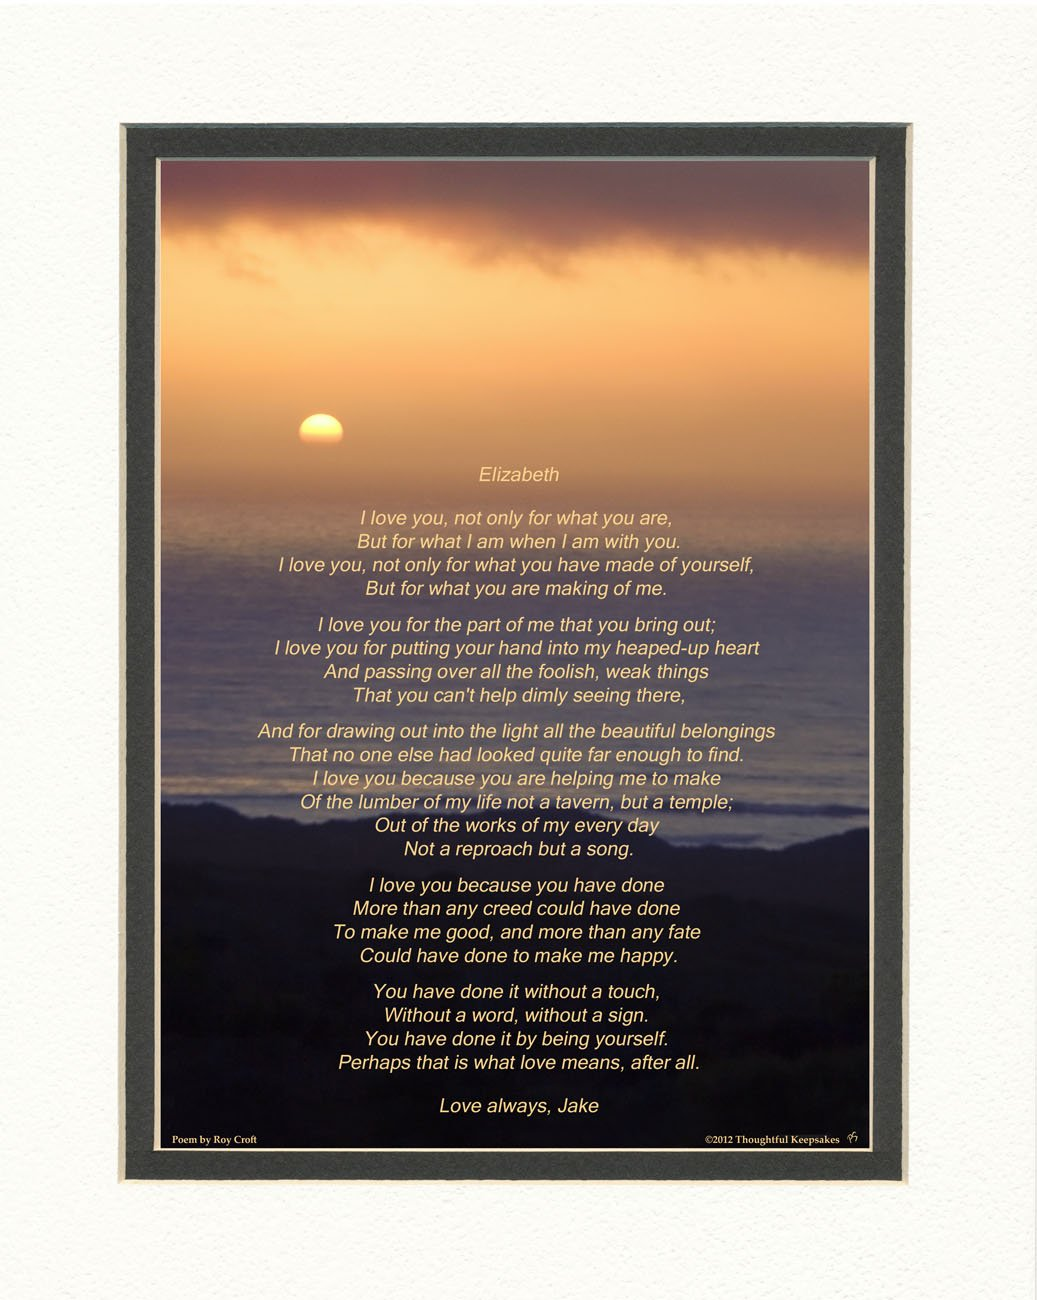 Amazon personalized gift for husband wife boyfriend or amazon personalized gift for husband wife boyfriend or girlfriend ocean sunset photo with i love you poem by roy croft 8x10 double matted solutioingenieria Image collections